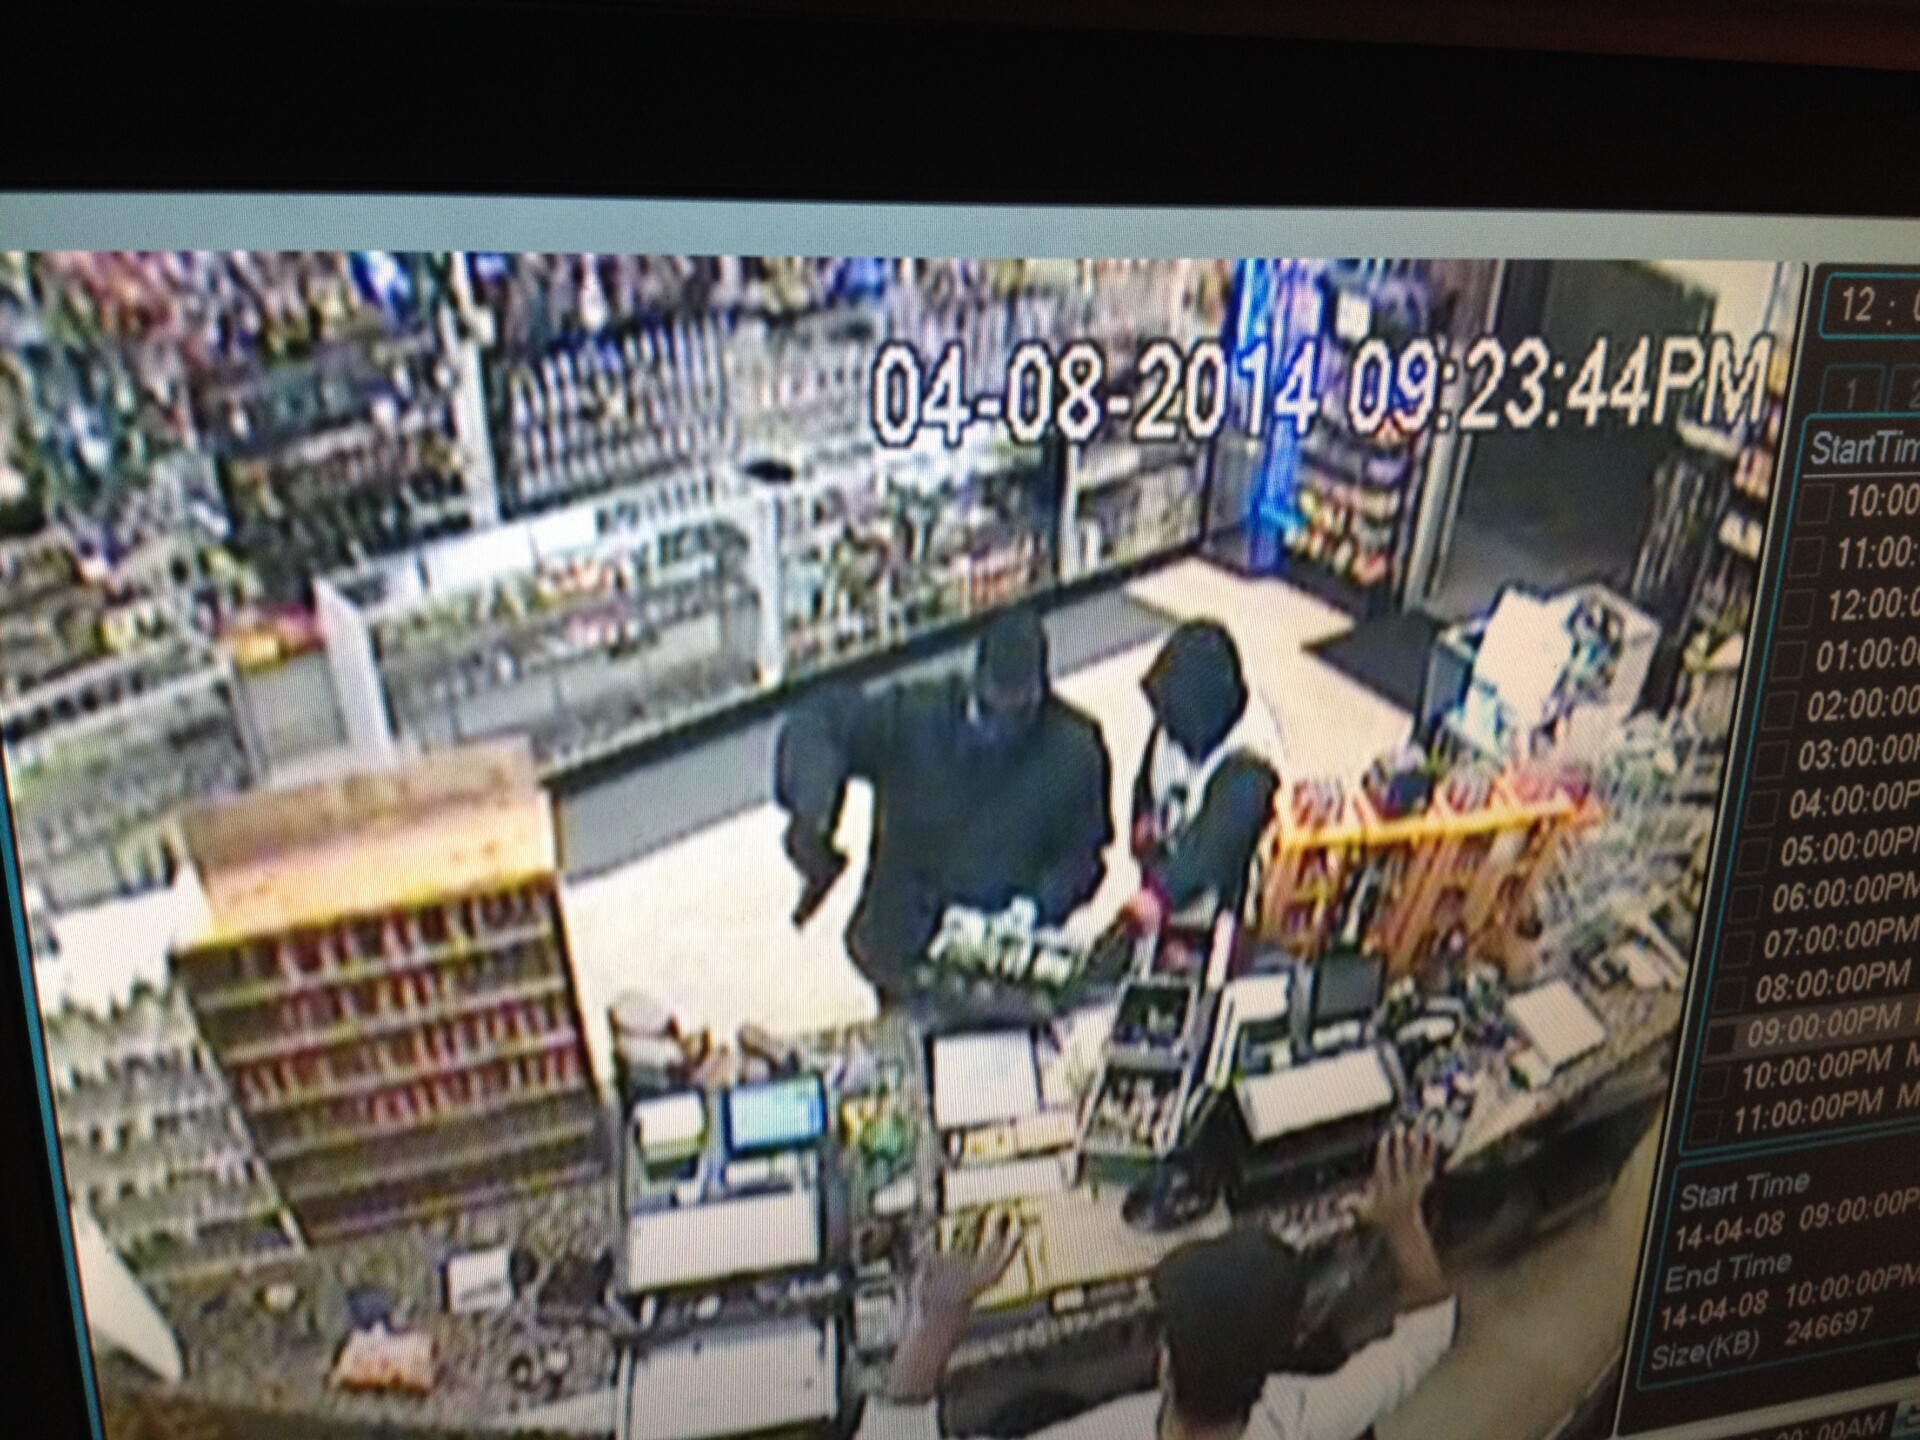 Photos: Police release photos of suspects in robbery at smokeshop